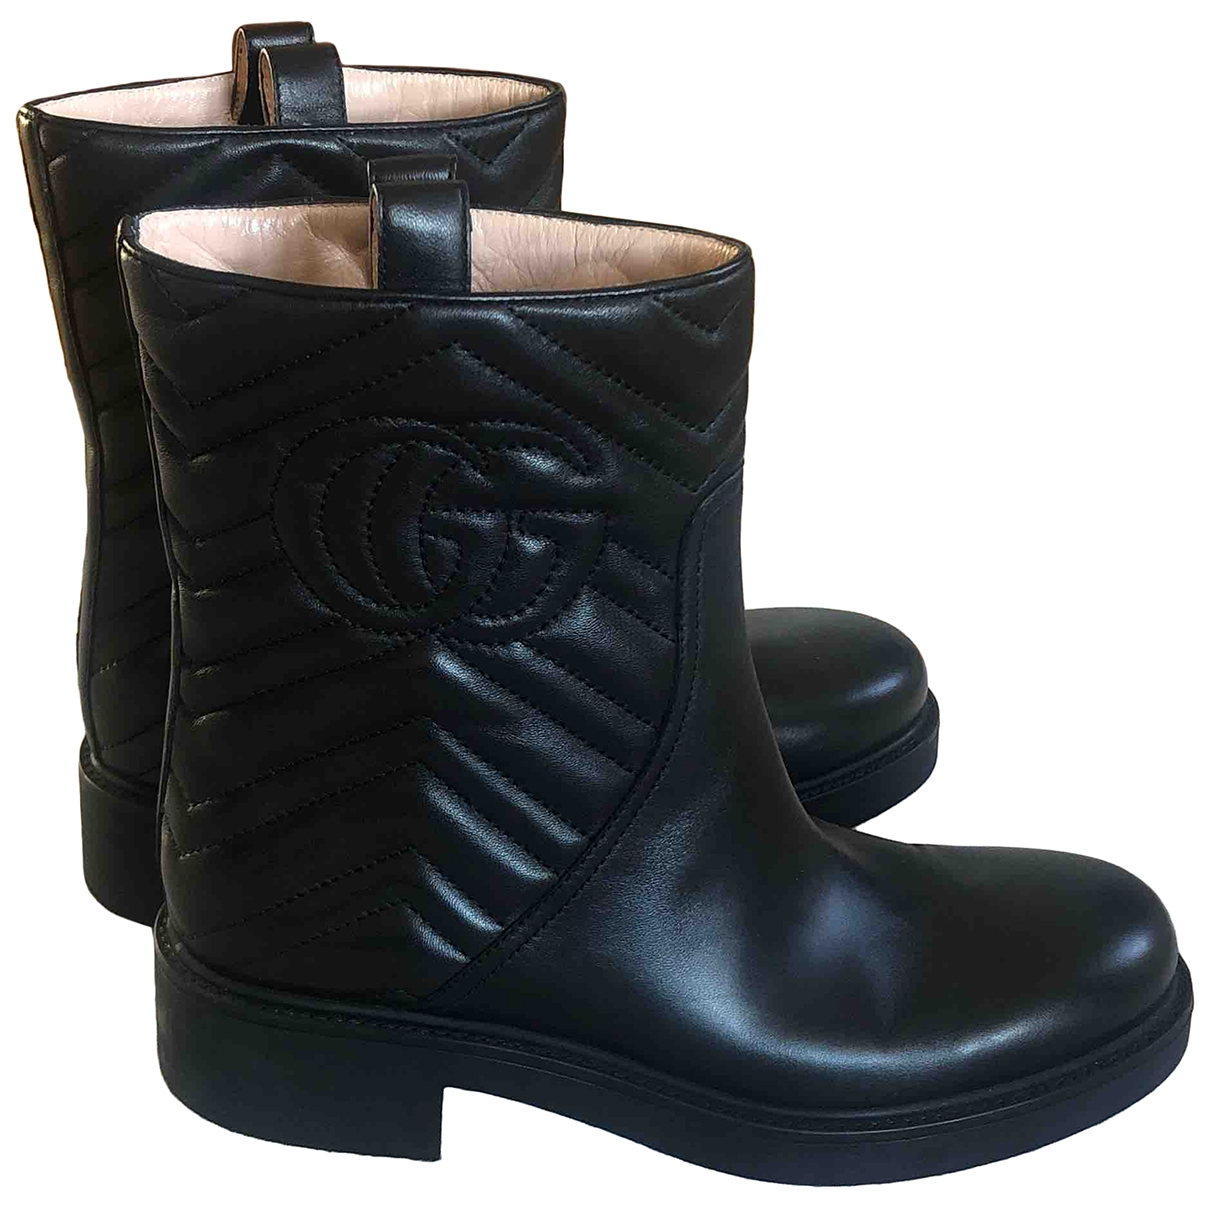 Gucci \N Black Leather Boots for Women 39 EU